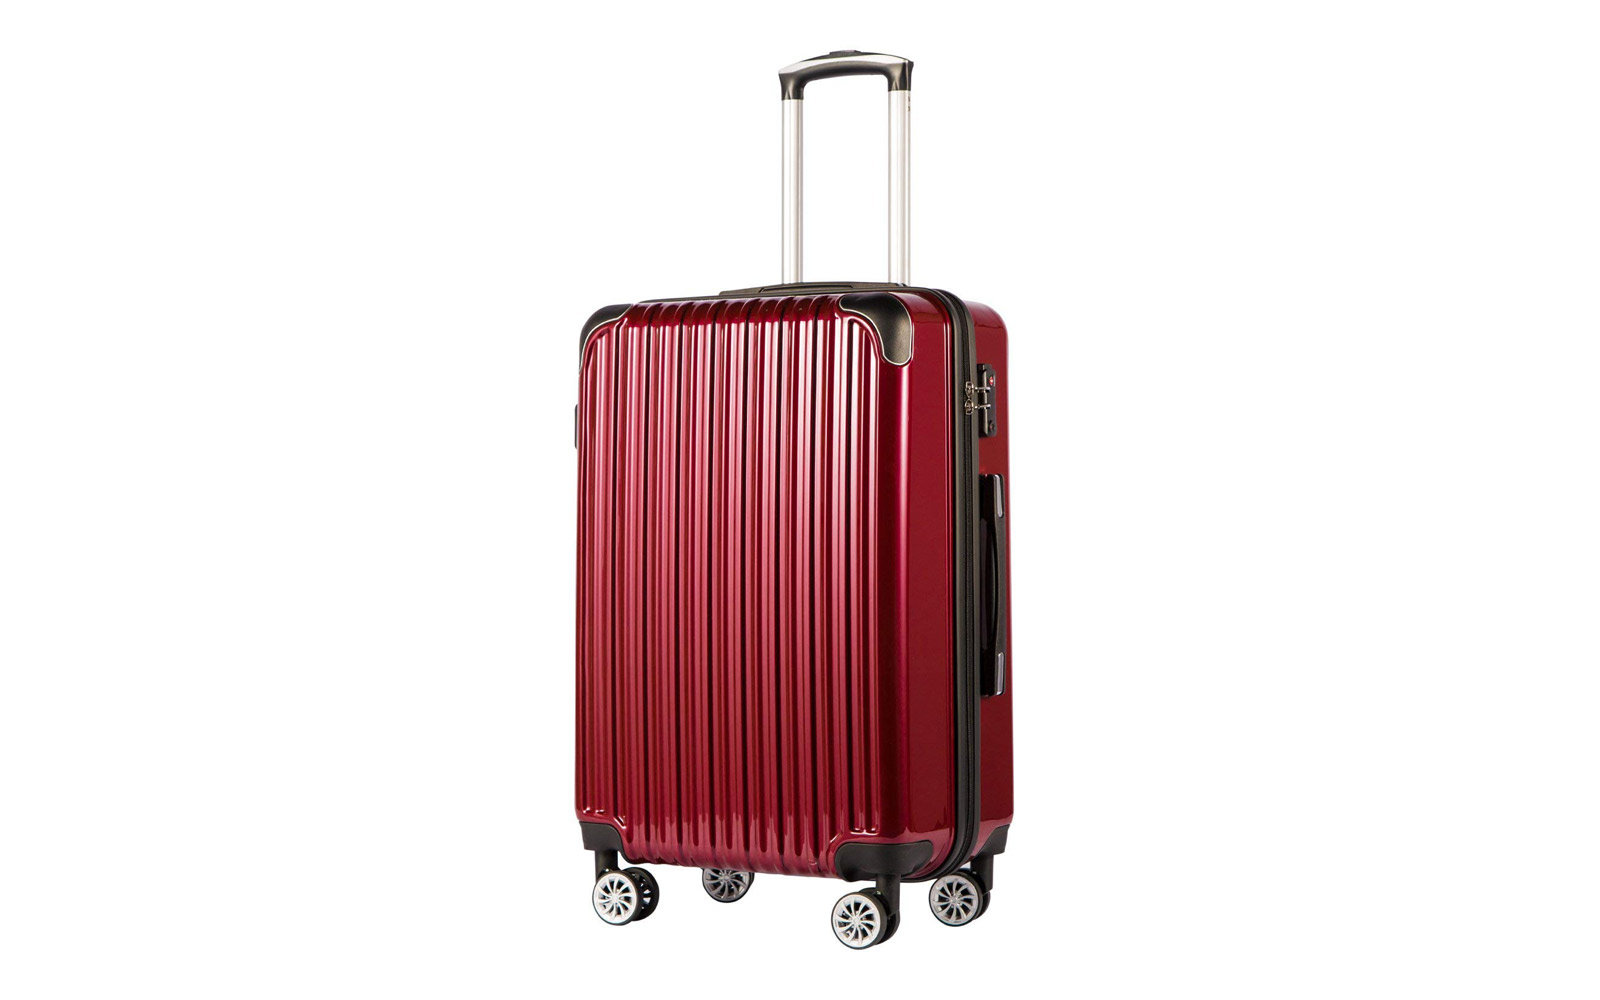 Coolife Luggage Expandable Carry-on